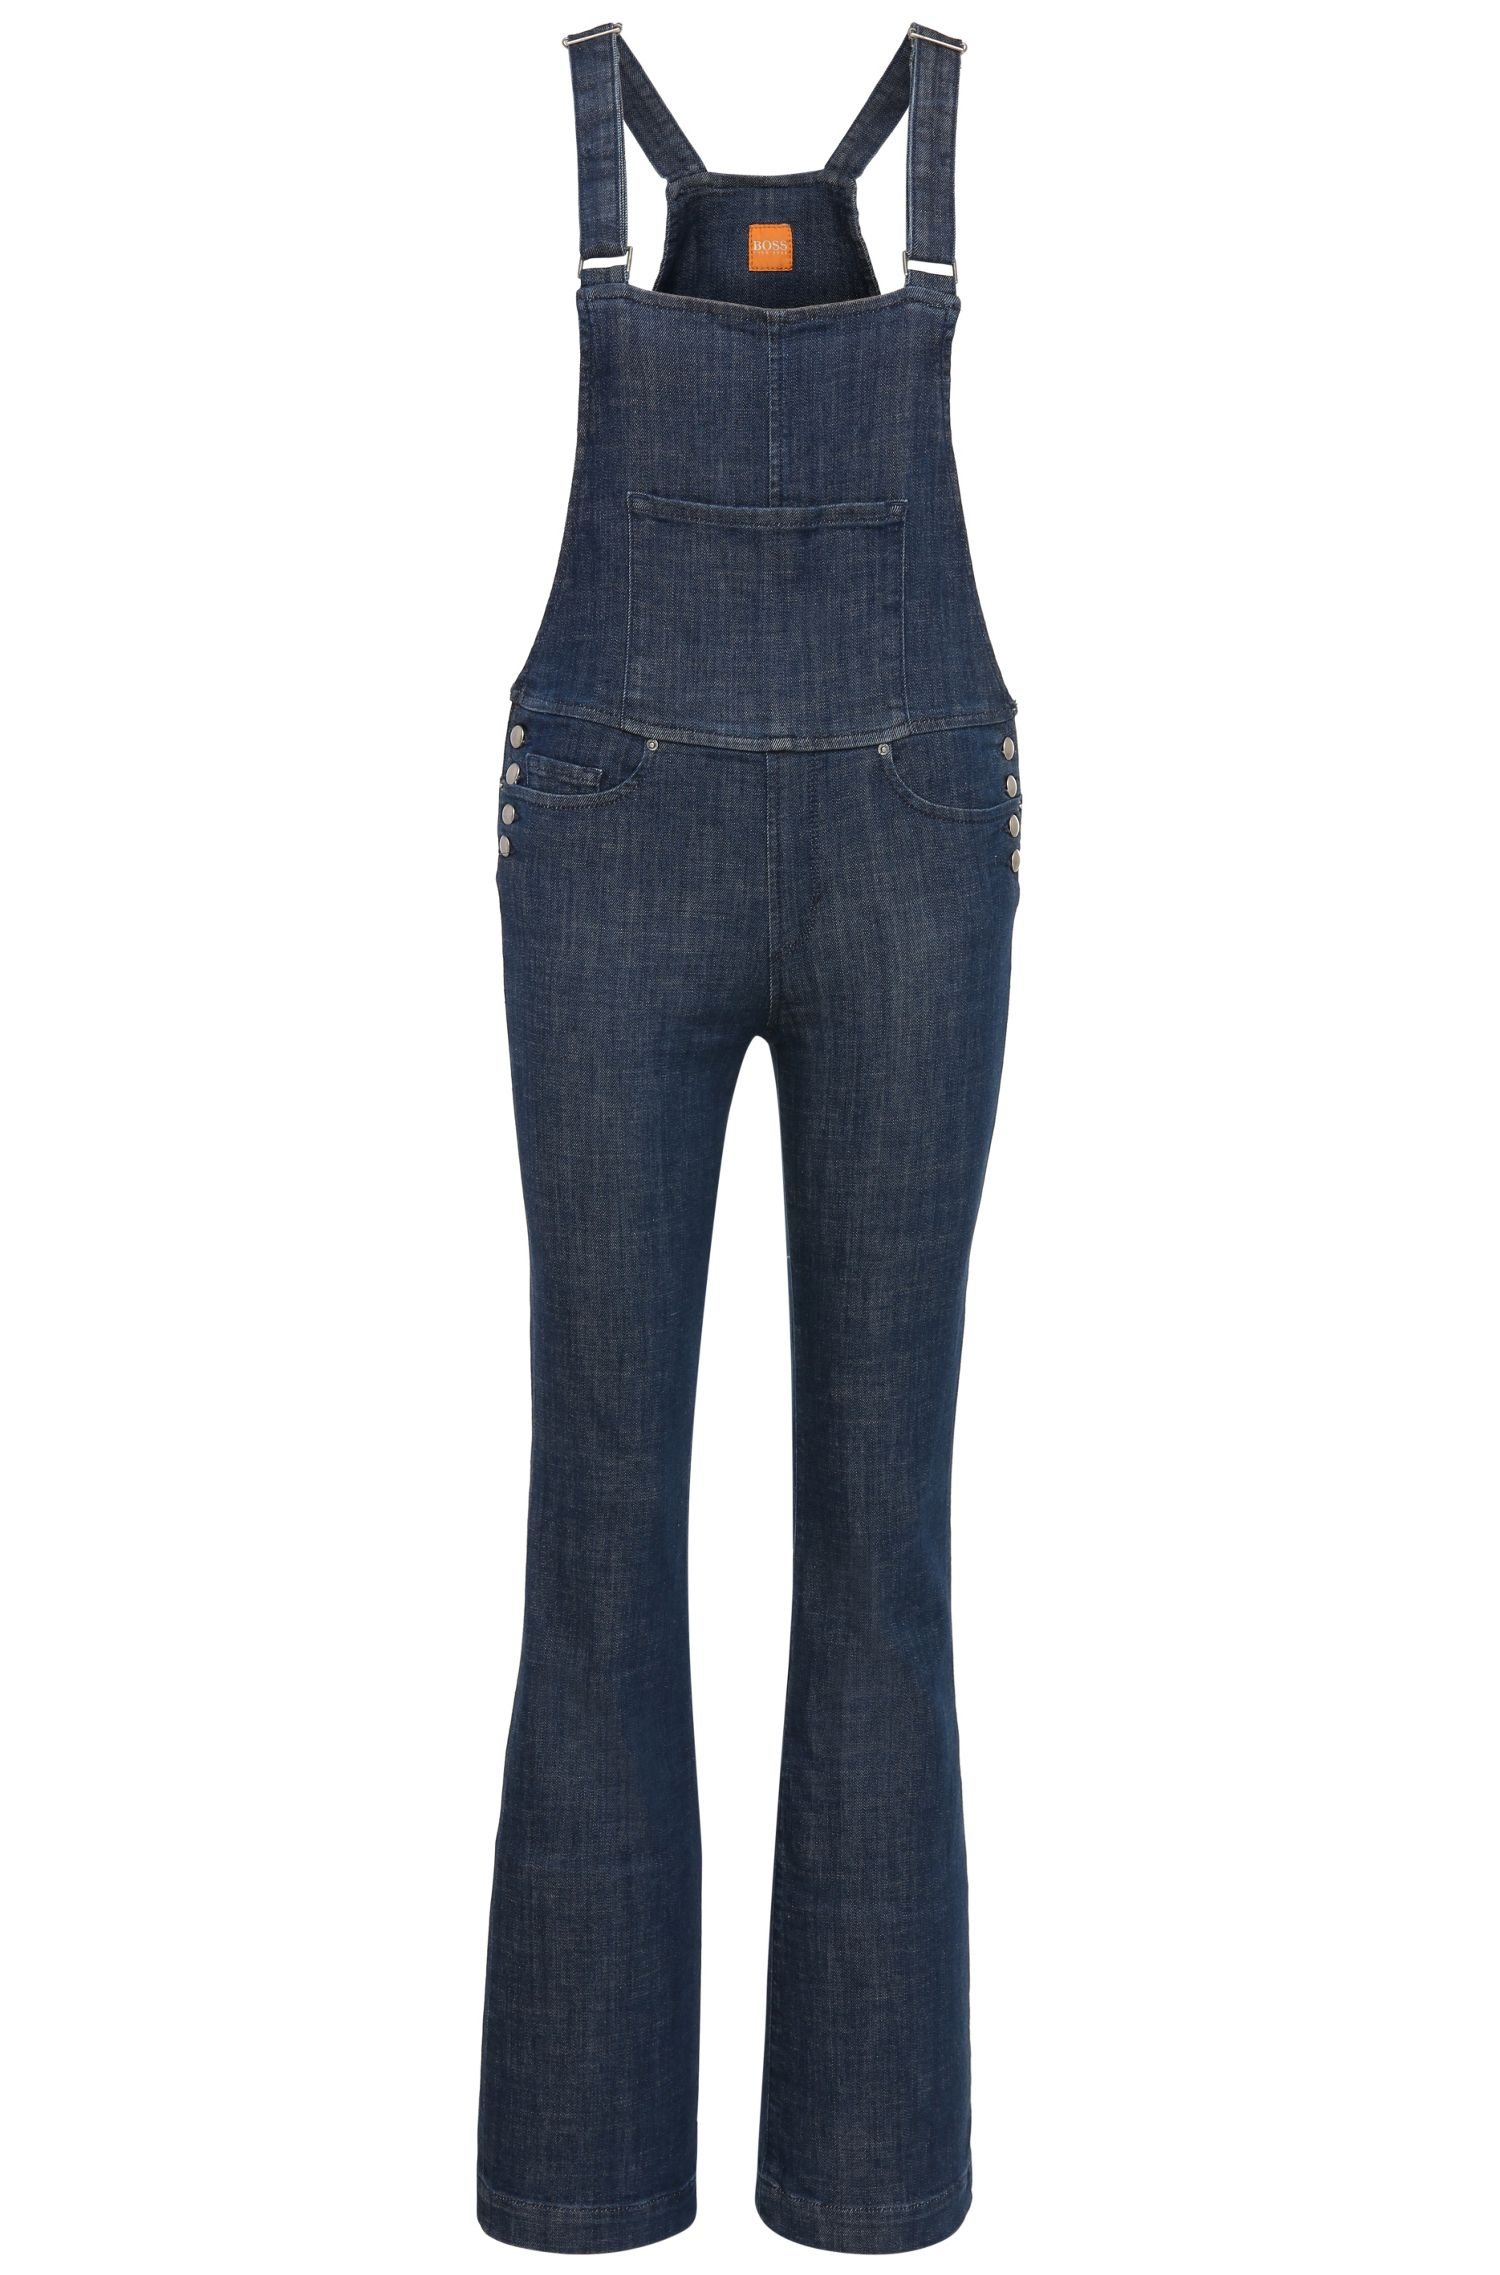 Jeans dungarees with bib in stretch cotton blend: 'Orange J90 Paris'